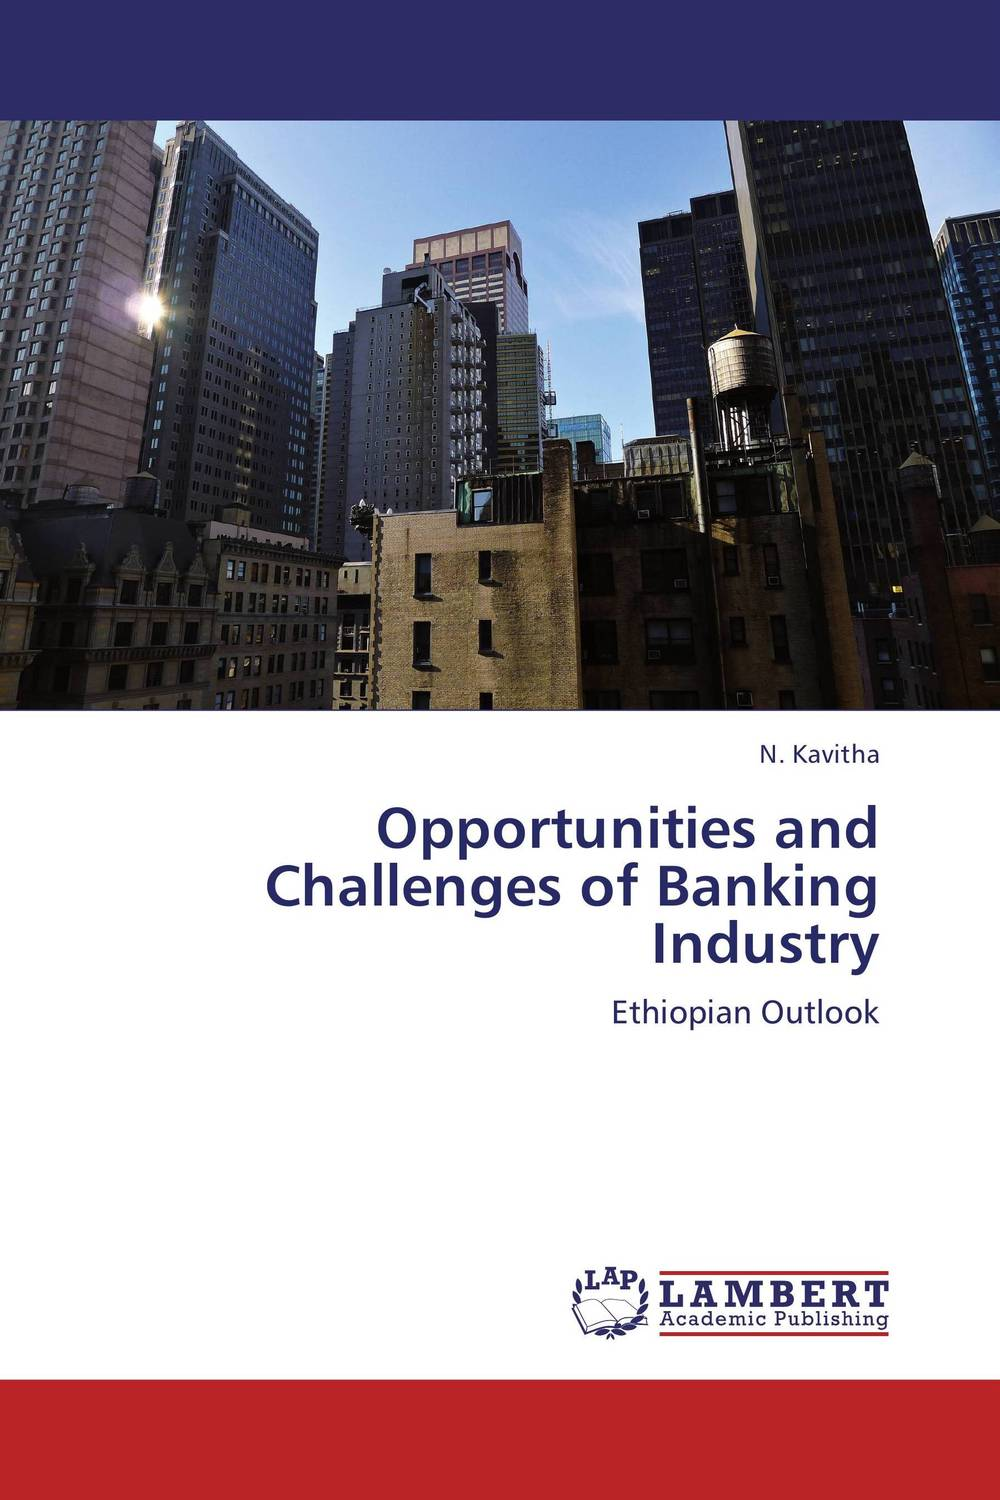 где купить Opportunities and Challenges of Banking Industry по лучшей цене